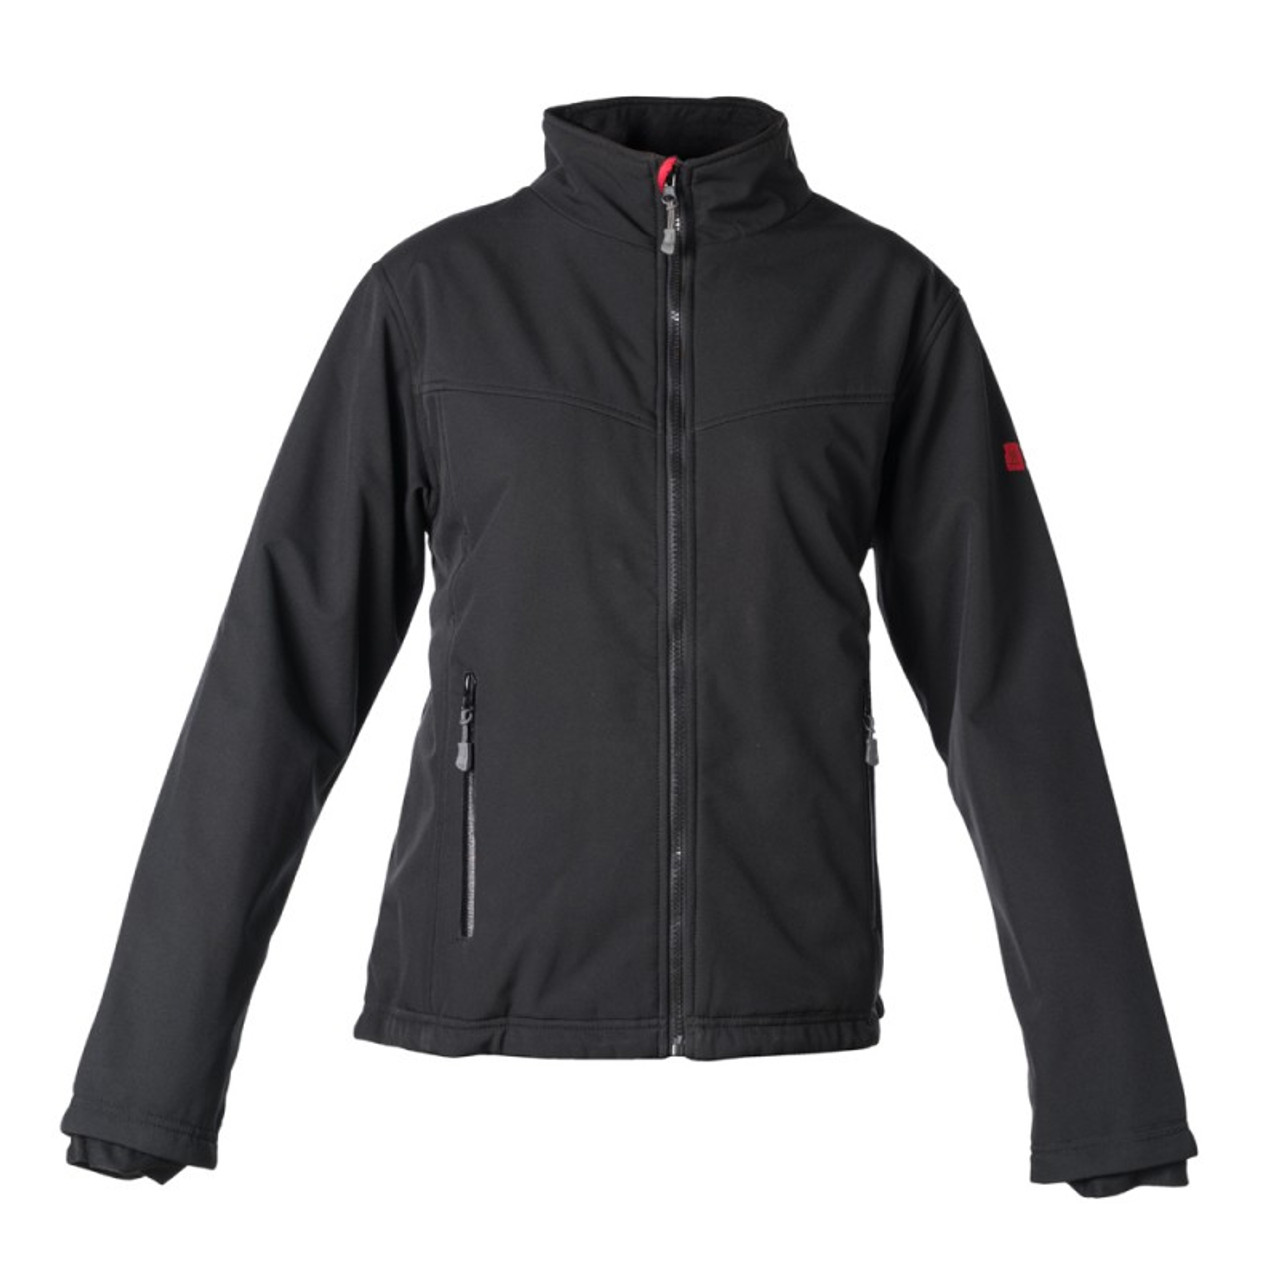 Battery Heated Clothing >> Escape Usb Battery Heated Jacket For Women Batteries Not Included